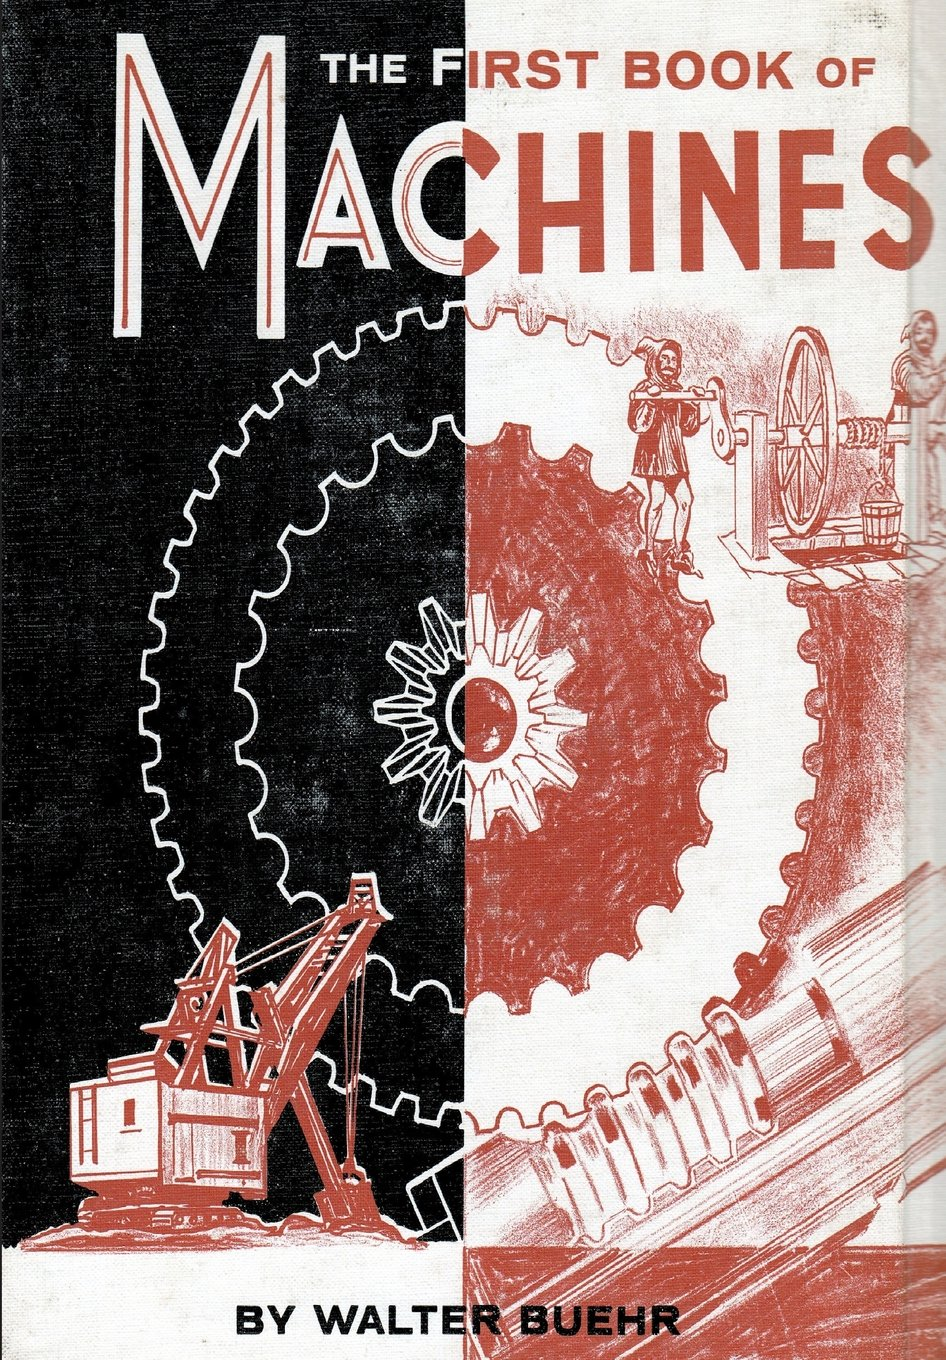 The First Book of Machines